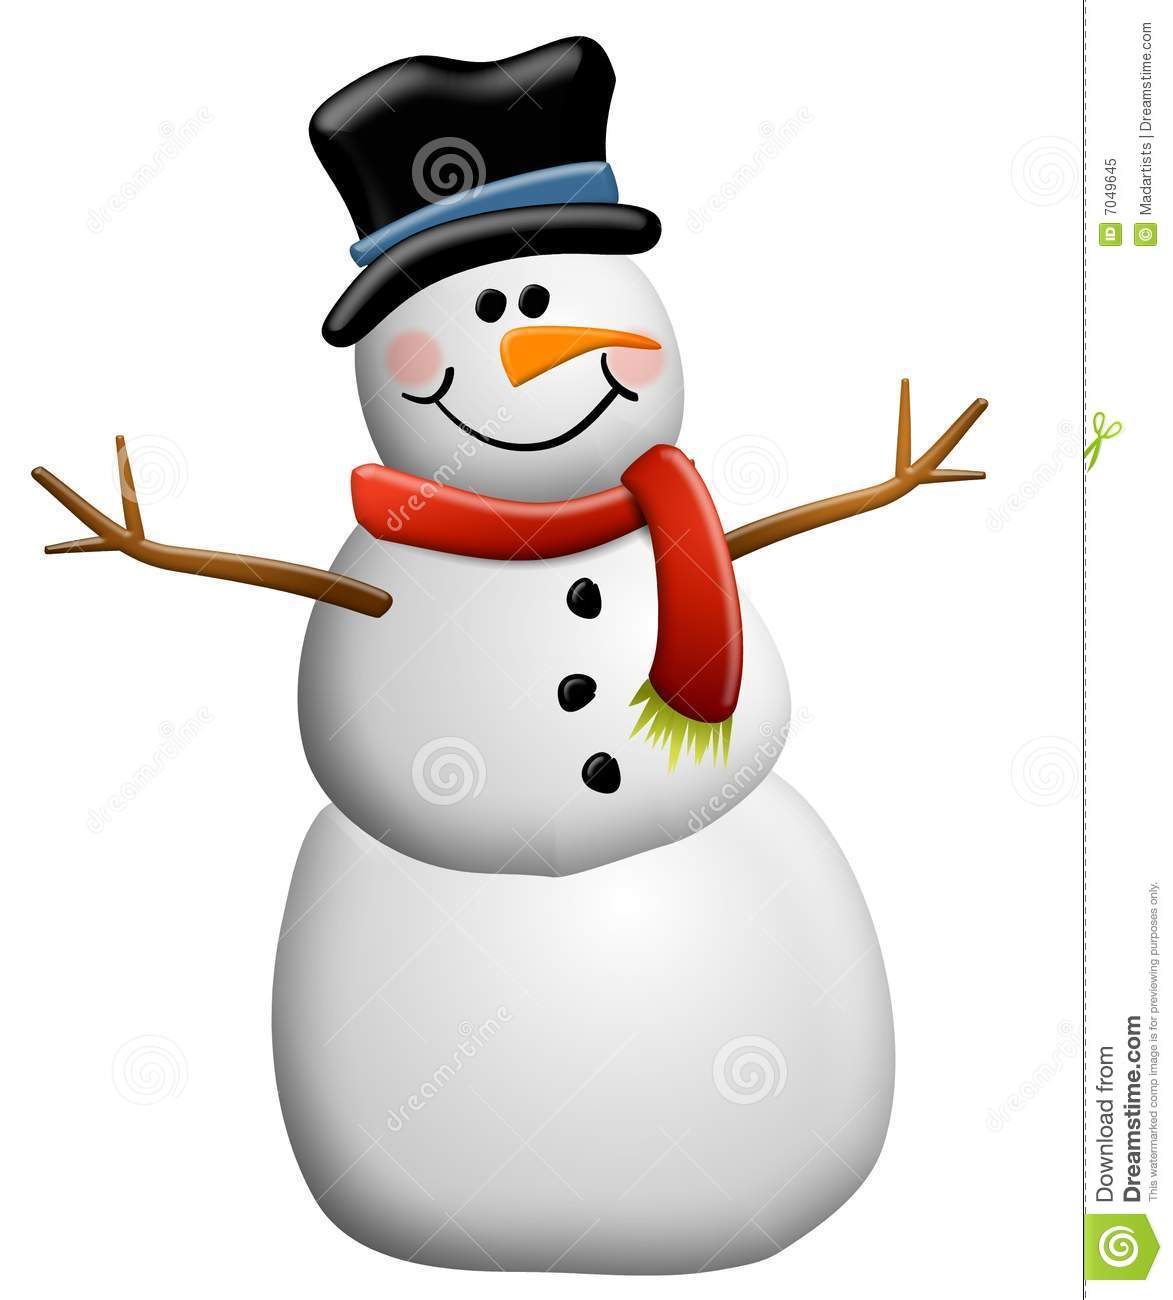 Snowman Clip Art Isolated Royalty Free Stock Photo.